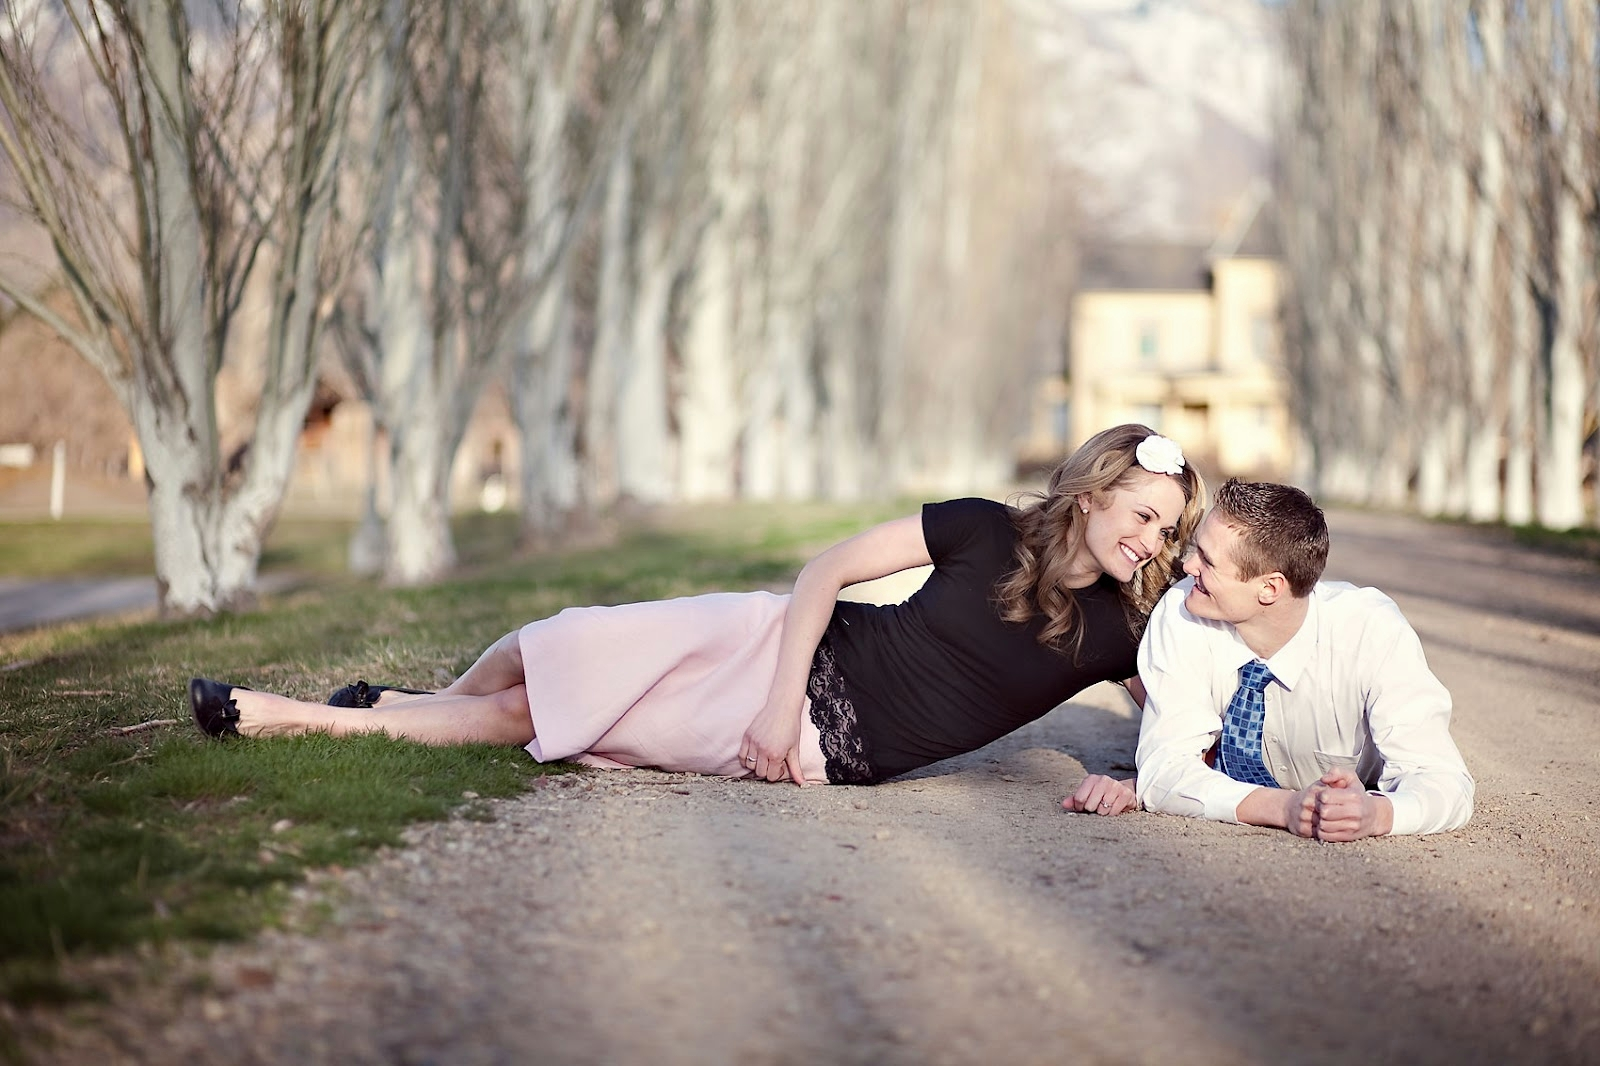 Very cute Love couple Wallpaper : Wallpaper Gallery: cute Romantic couple